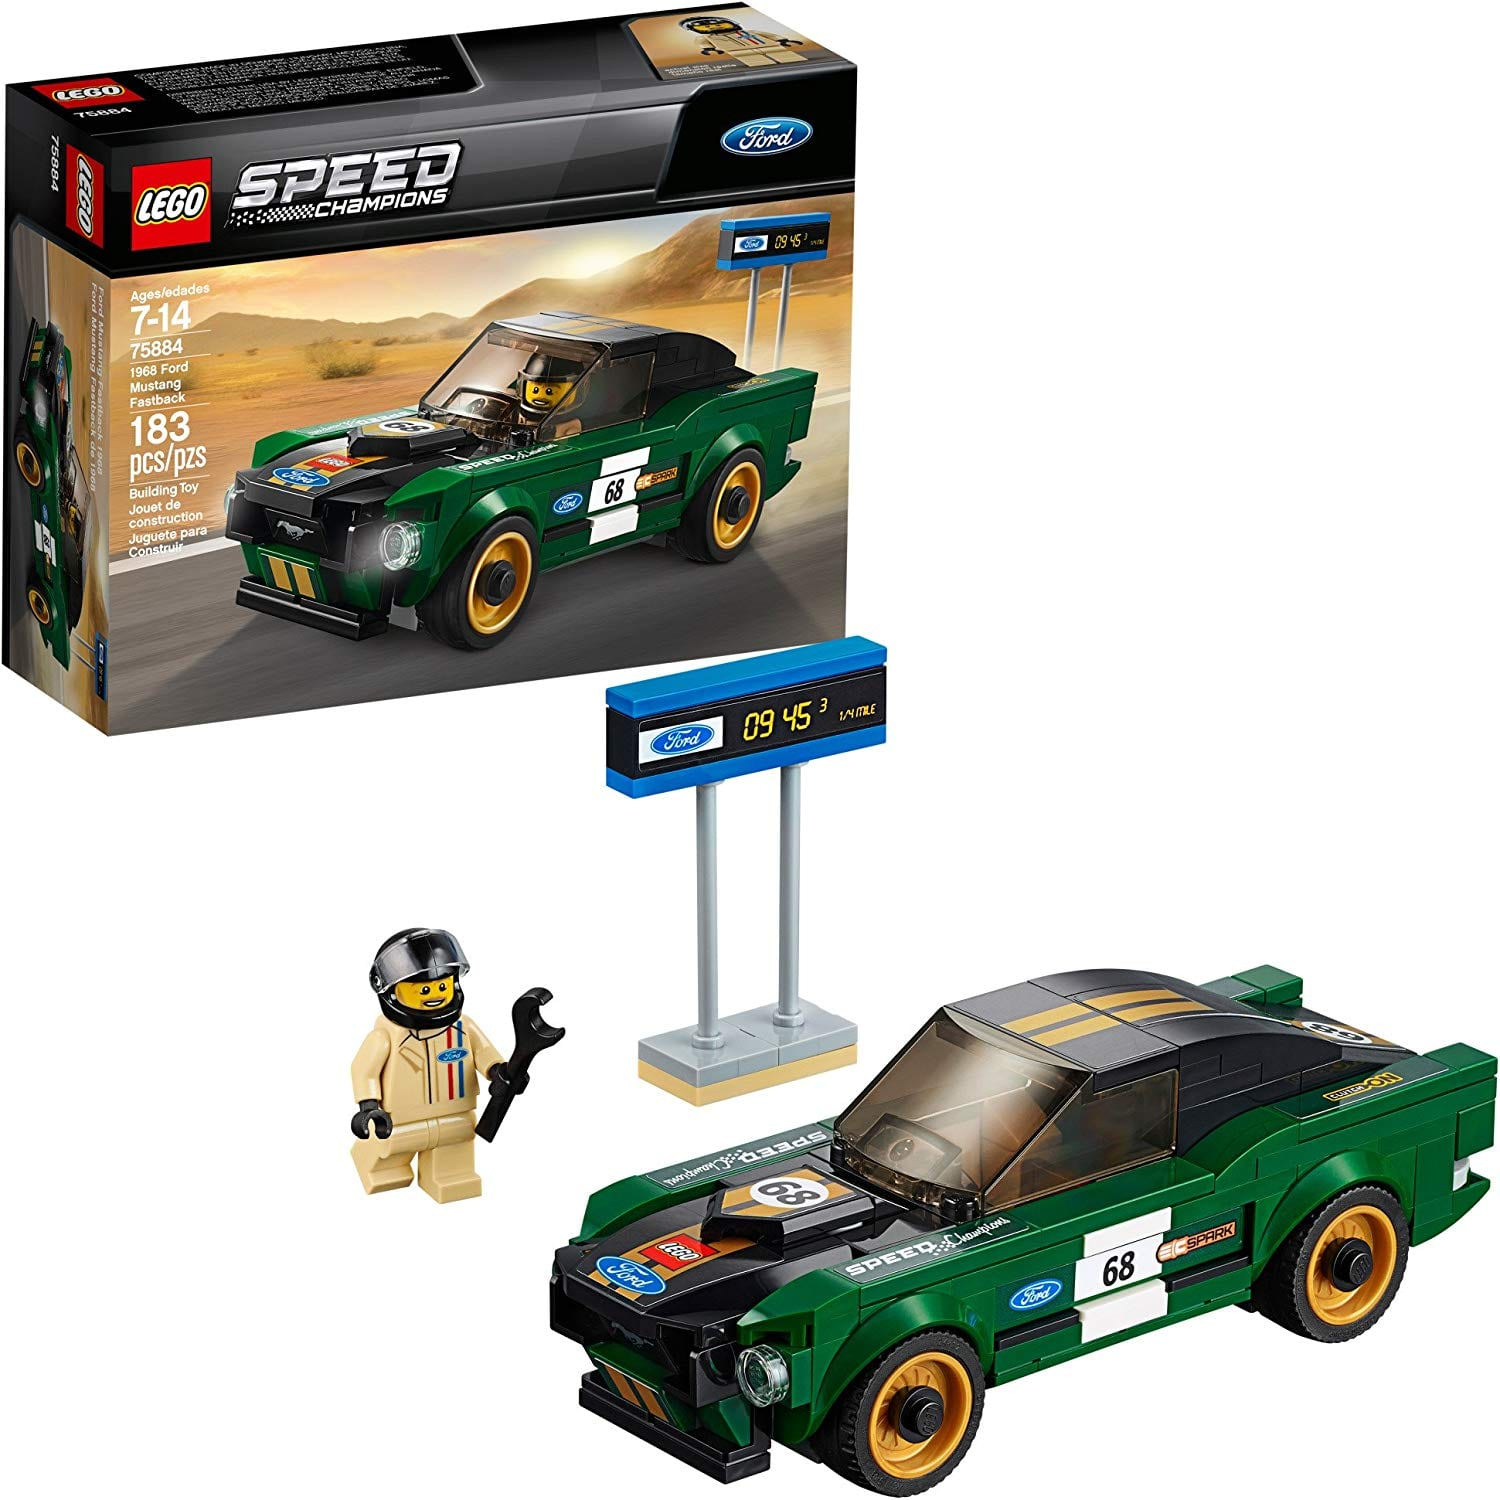 Save $10 when you spend $50 on select LEGO